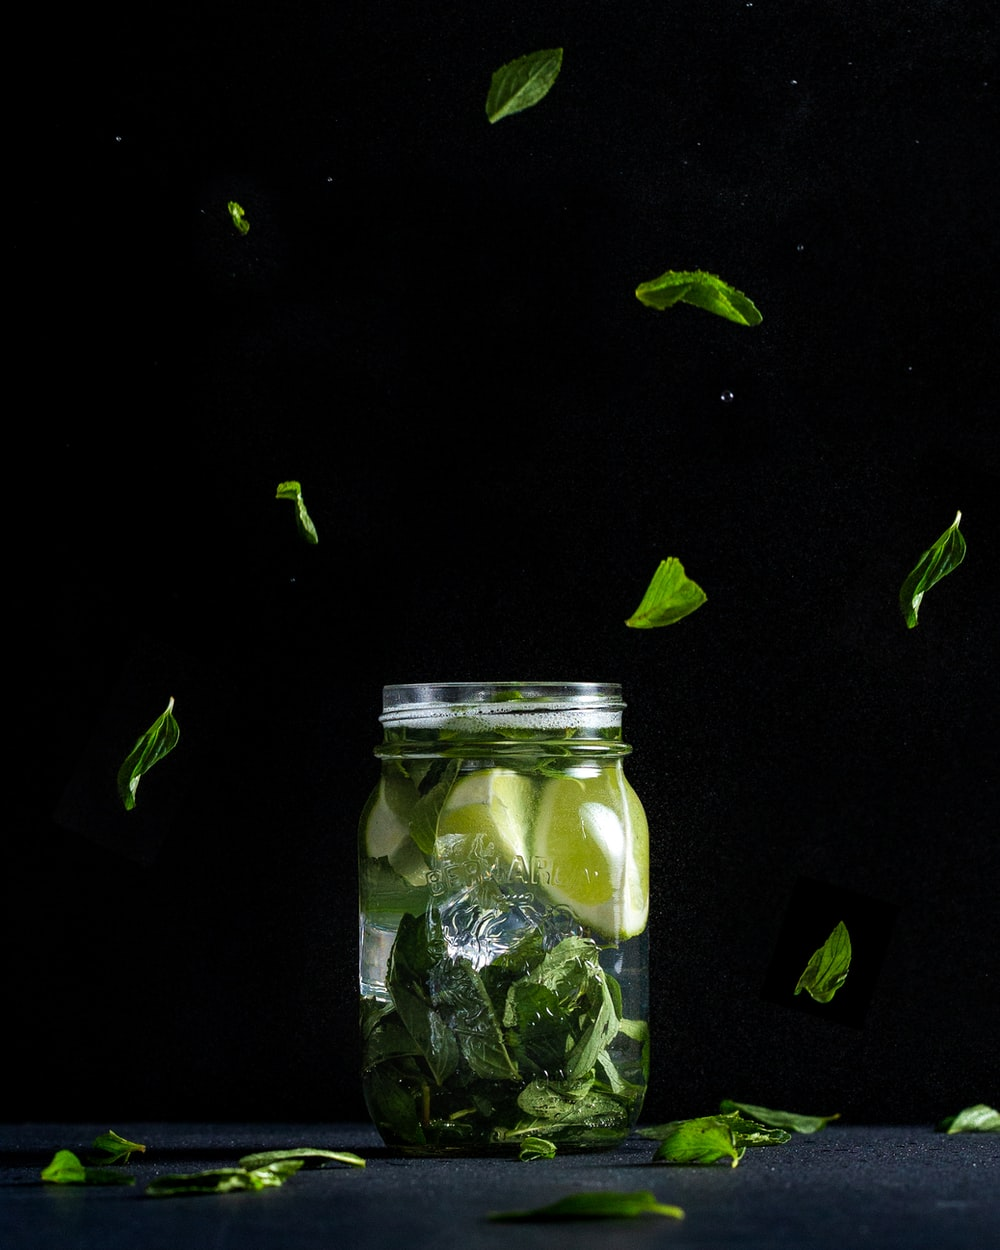 sliced lime in clear glass jar